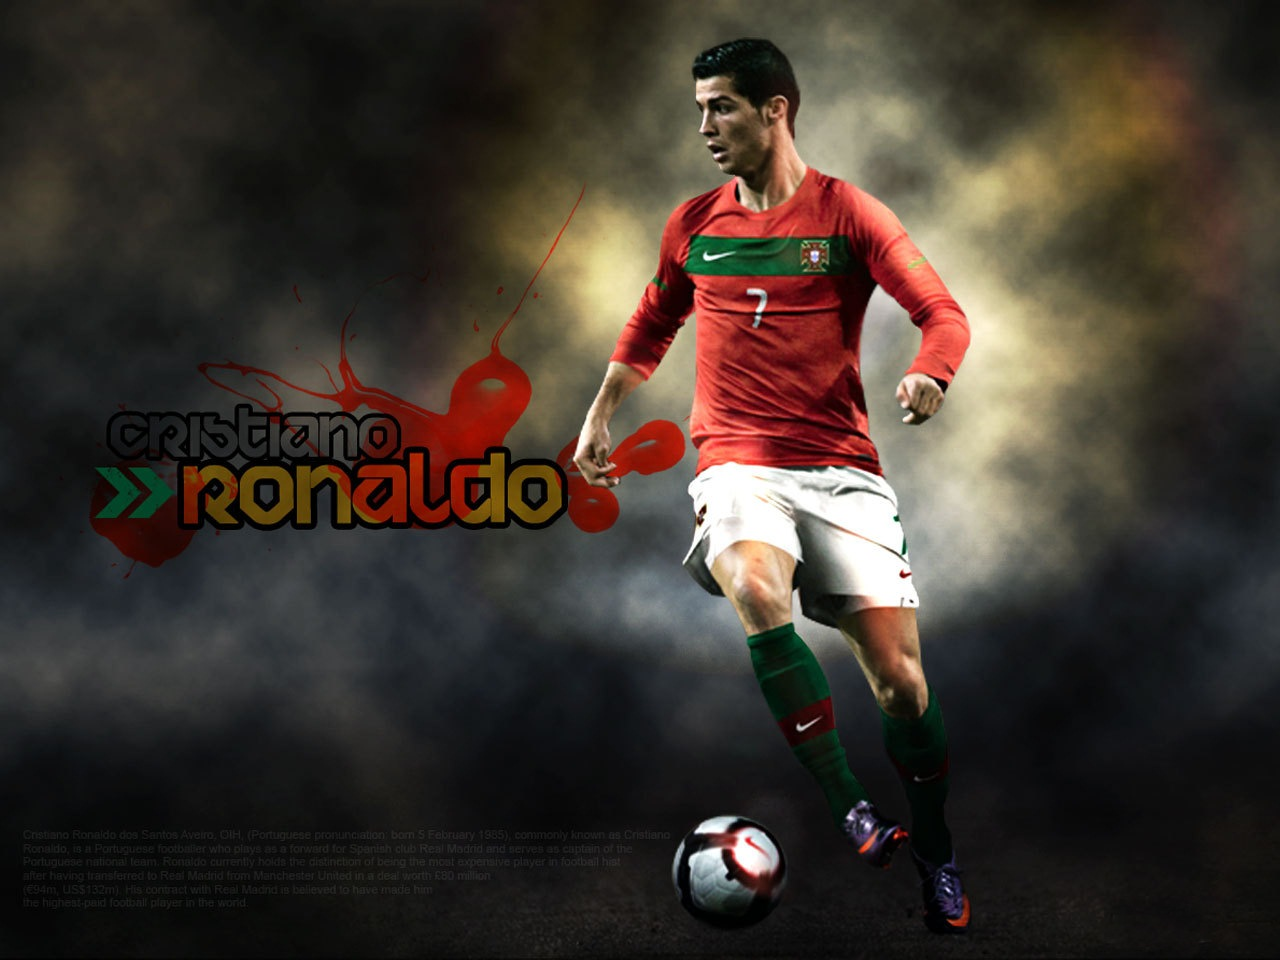 Free Download Cristiano Ronaldo Hd Wallpapers 2012 2013 All About Hd 1280x960 For Your Desktop Mobile Tablet Explore 77 Cristiano Ronaldo Wallpapers Hd Cristiano Ronaldo Hd Wallpapers 2015 Cristiano